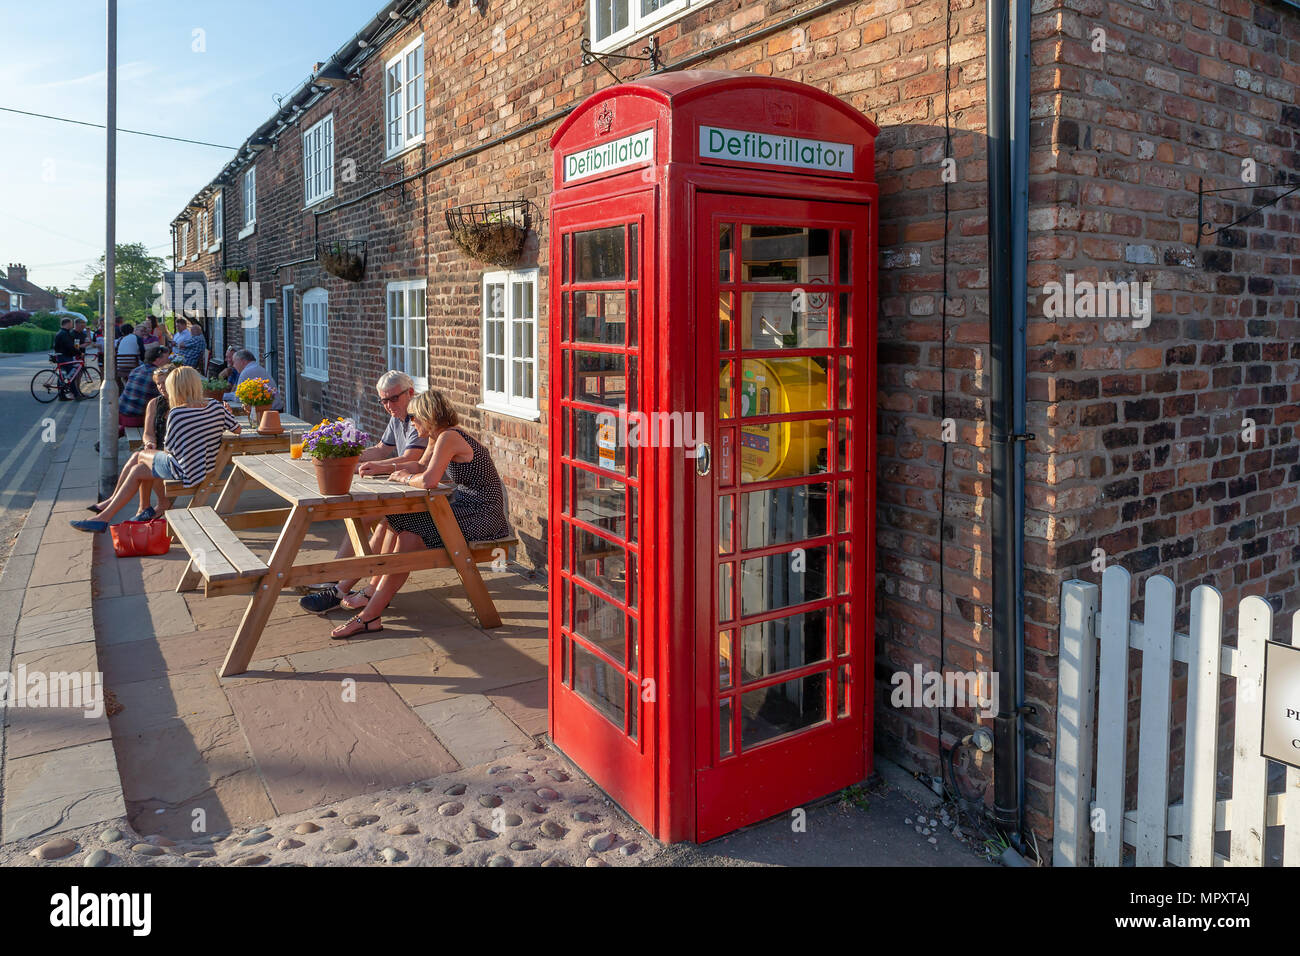 Red K2 telephone box used as a library and defibrillator station outside The Hatton Arms public house in Hatton, Cheshire, England, UK Stock Photo